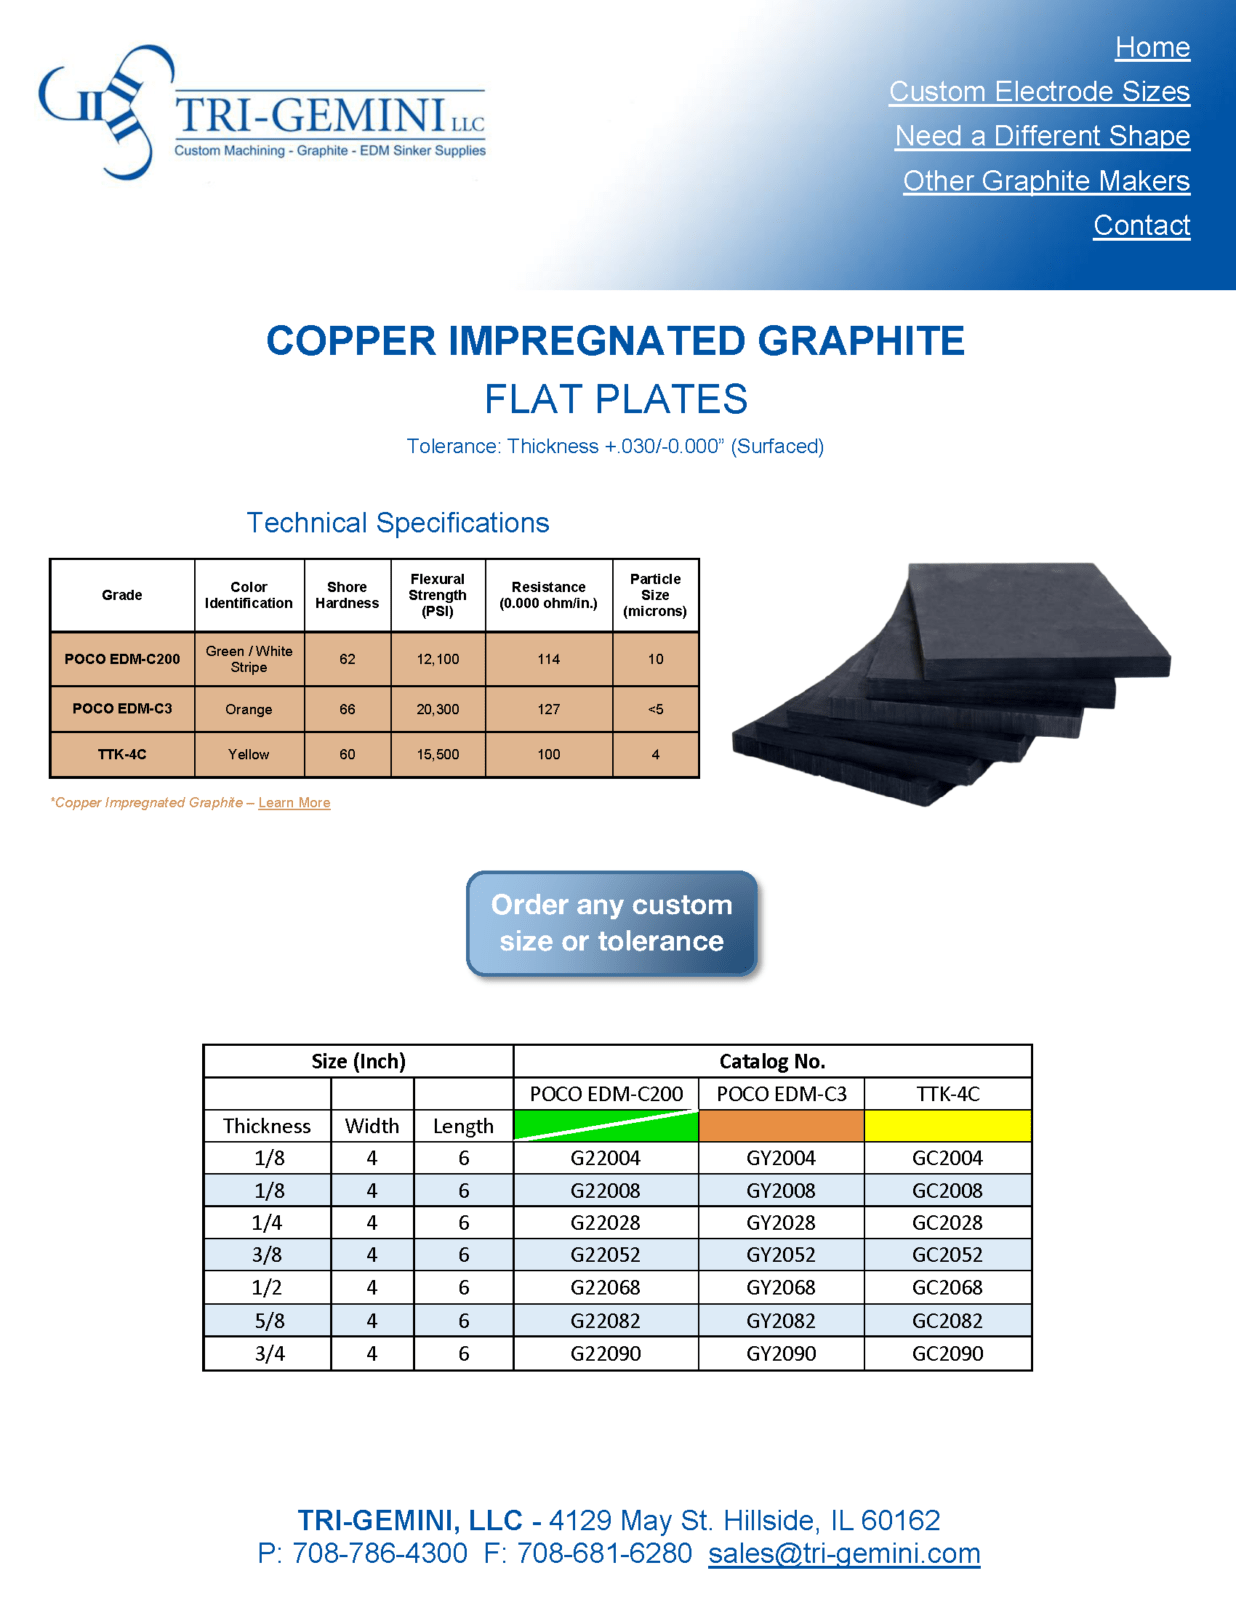 Copper Impregnated Flat Plates